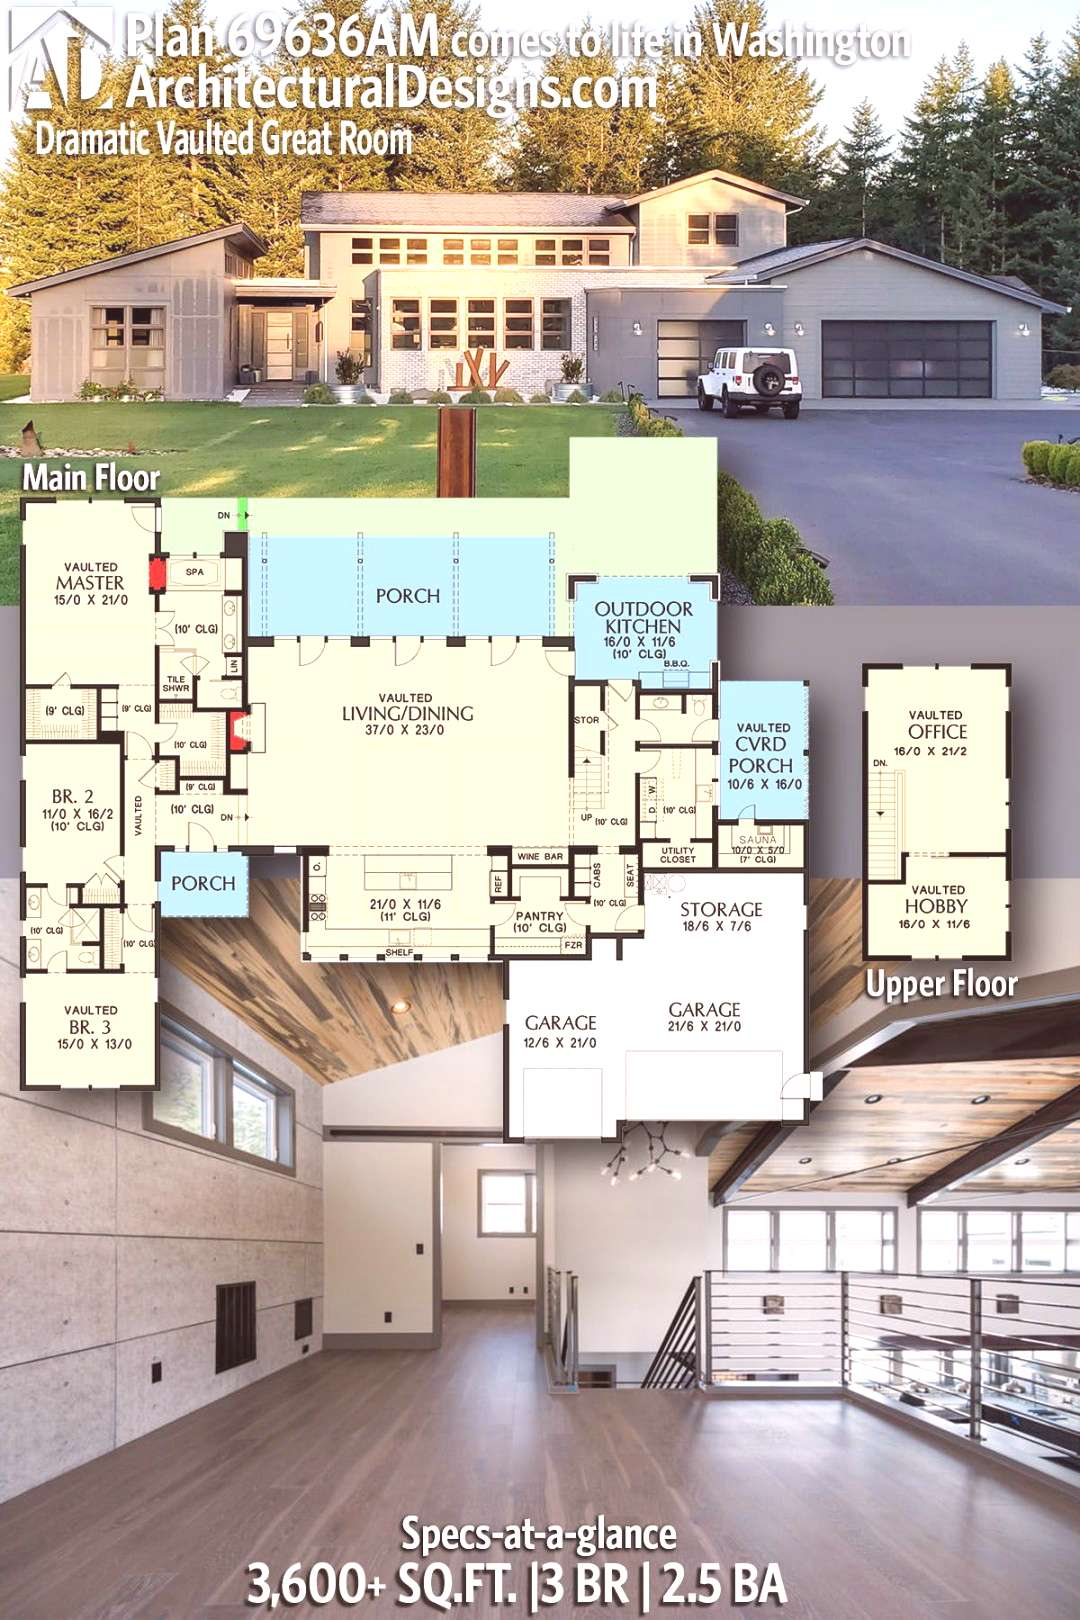 Plan 69636AM: Dramatic Contemporary House Plan with Vaulted Great Room